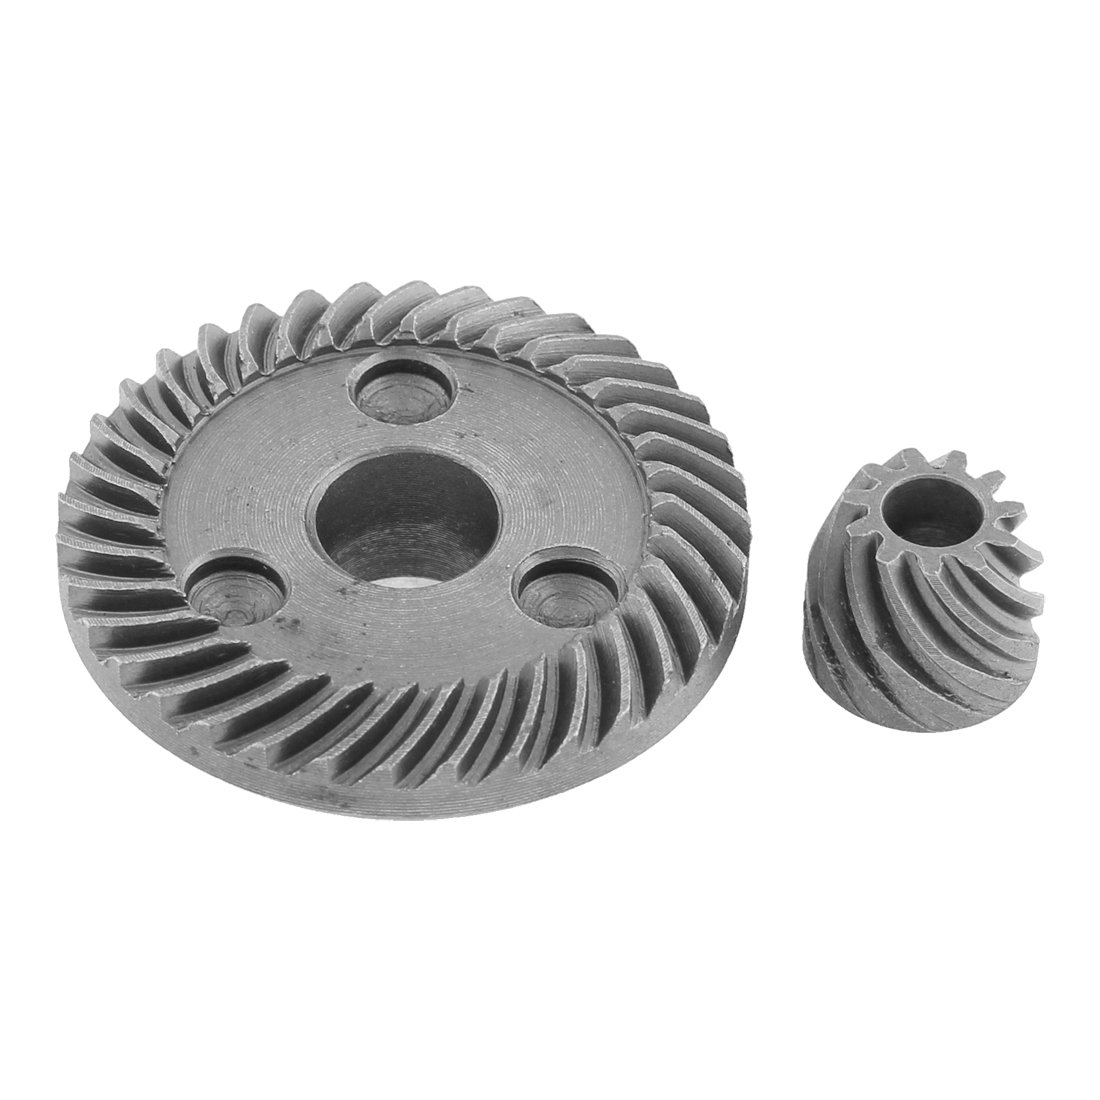 Electric Power Tool Repairing Spiral Bevel Gear Pinion Set